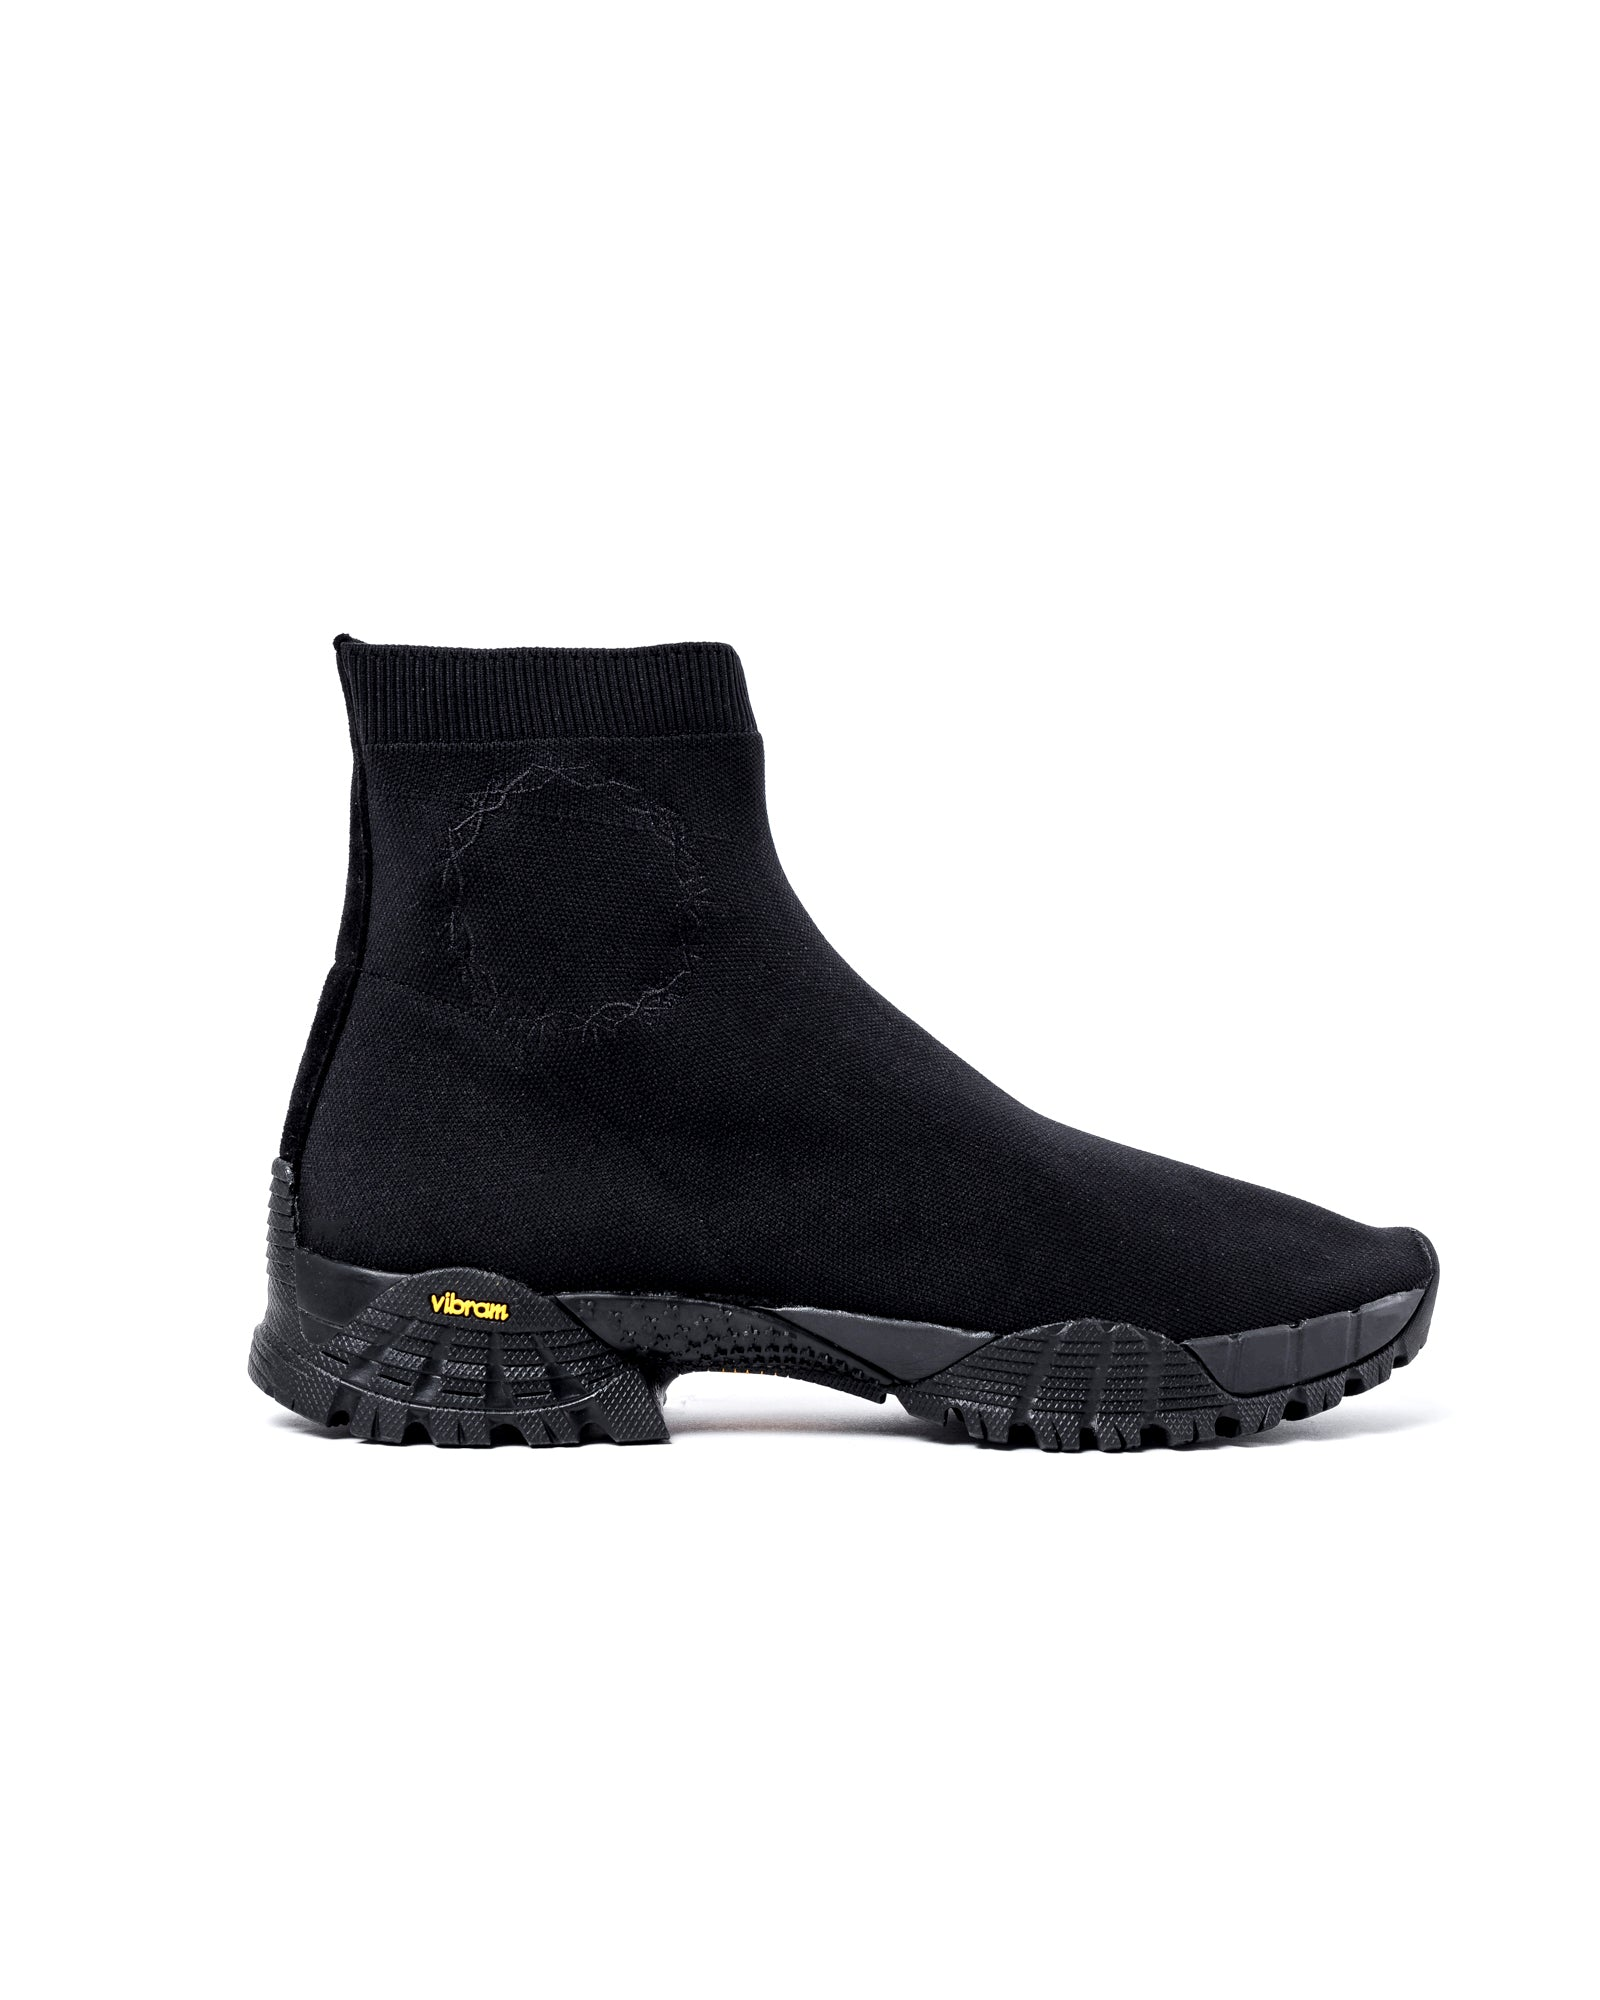 Knit Hiking Boot in Black